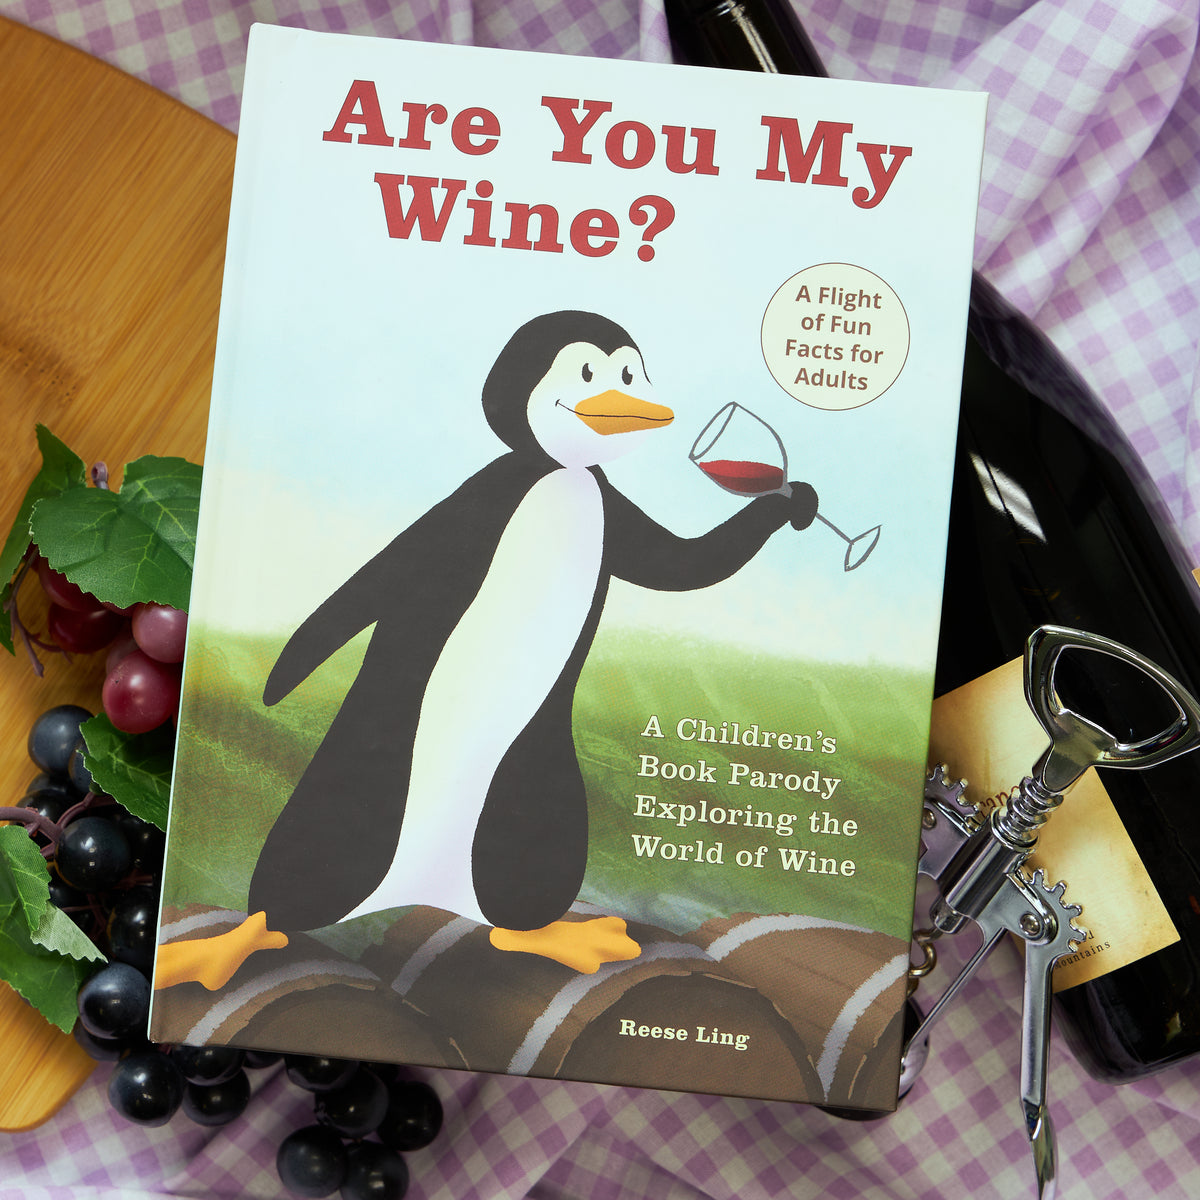 Are You My Wine? A Children's Book Parody for Adults Exploring the World of Wine